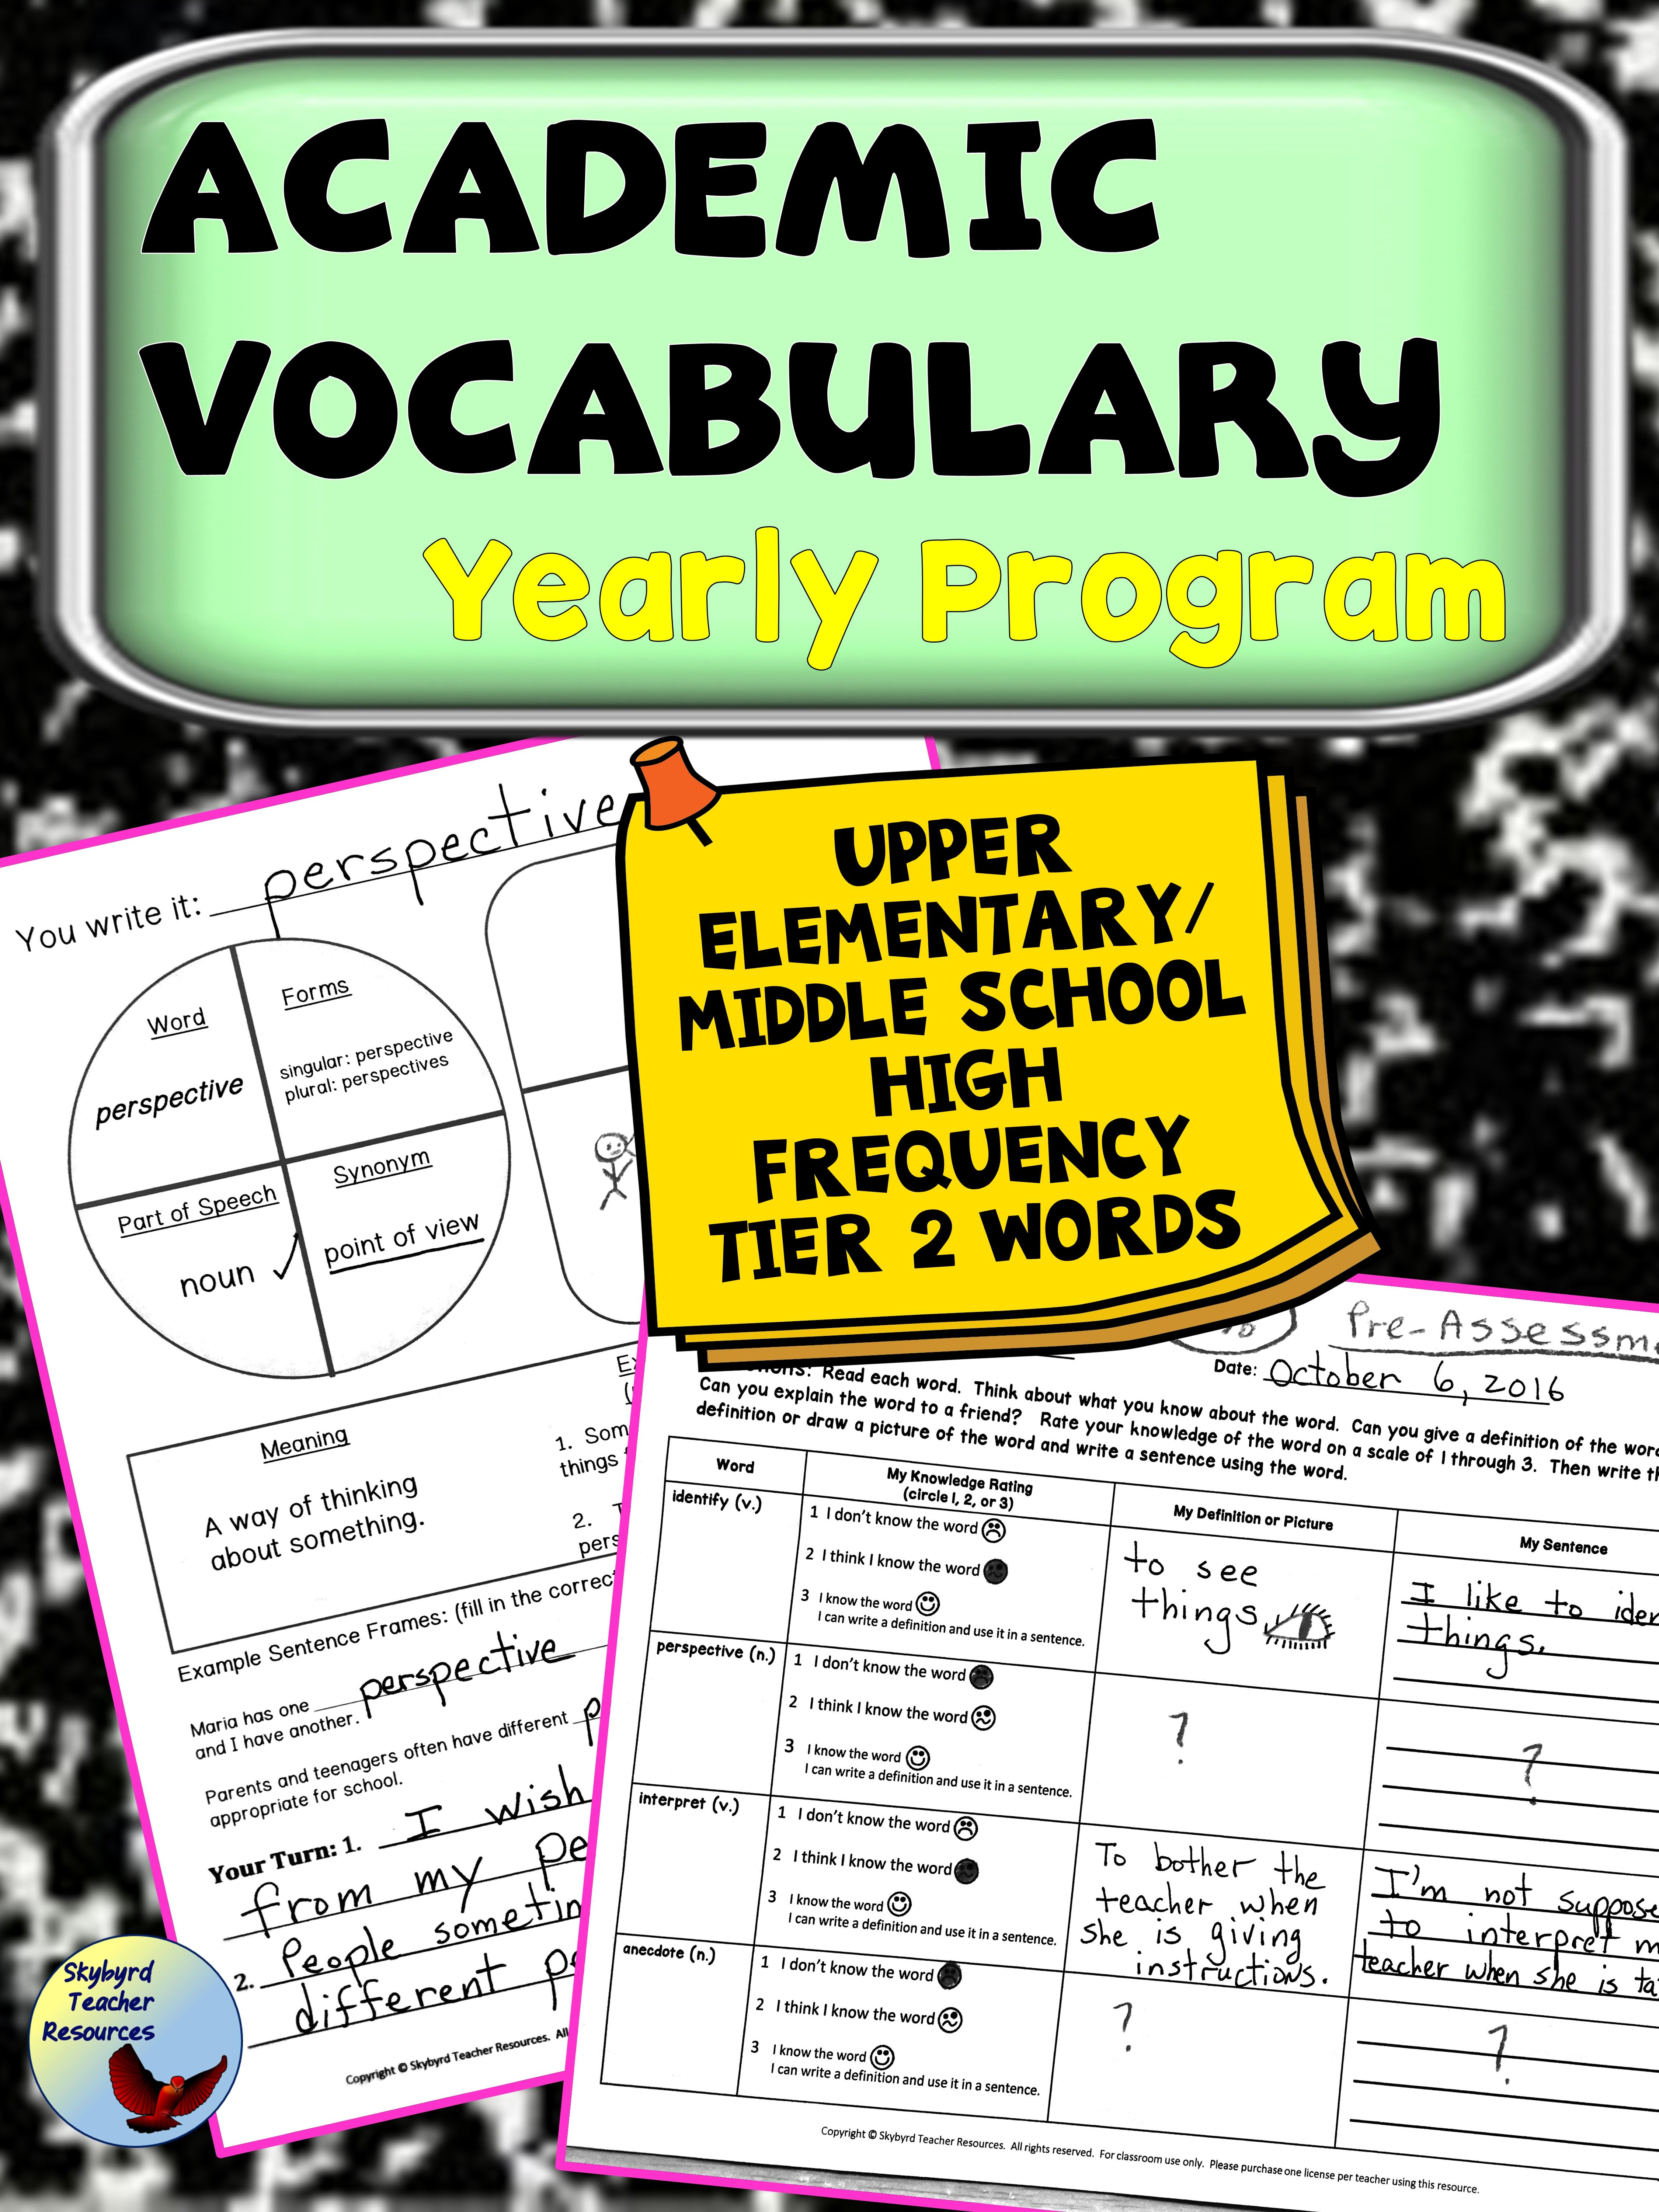 Word Of The Week Academic Vocabulary Yearly Program Great